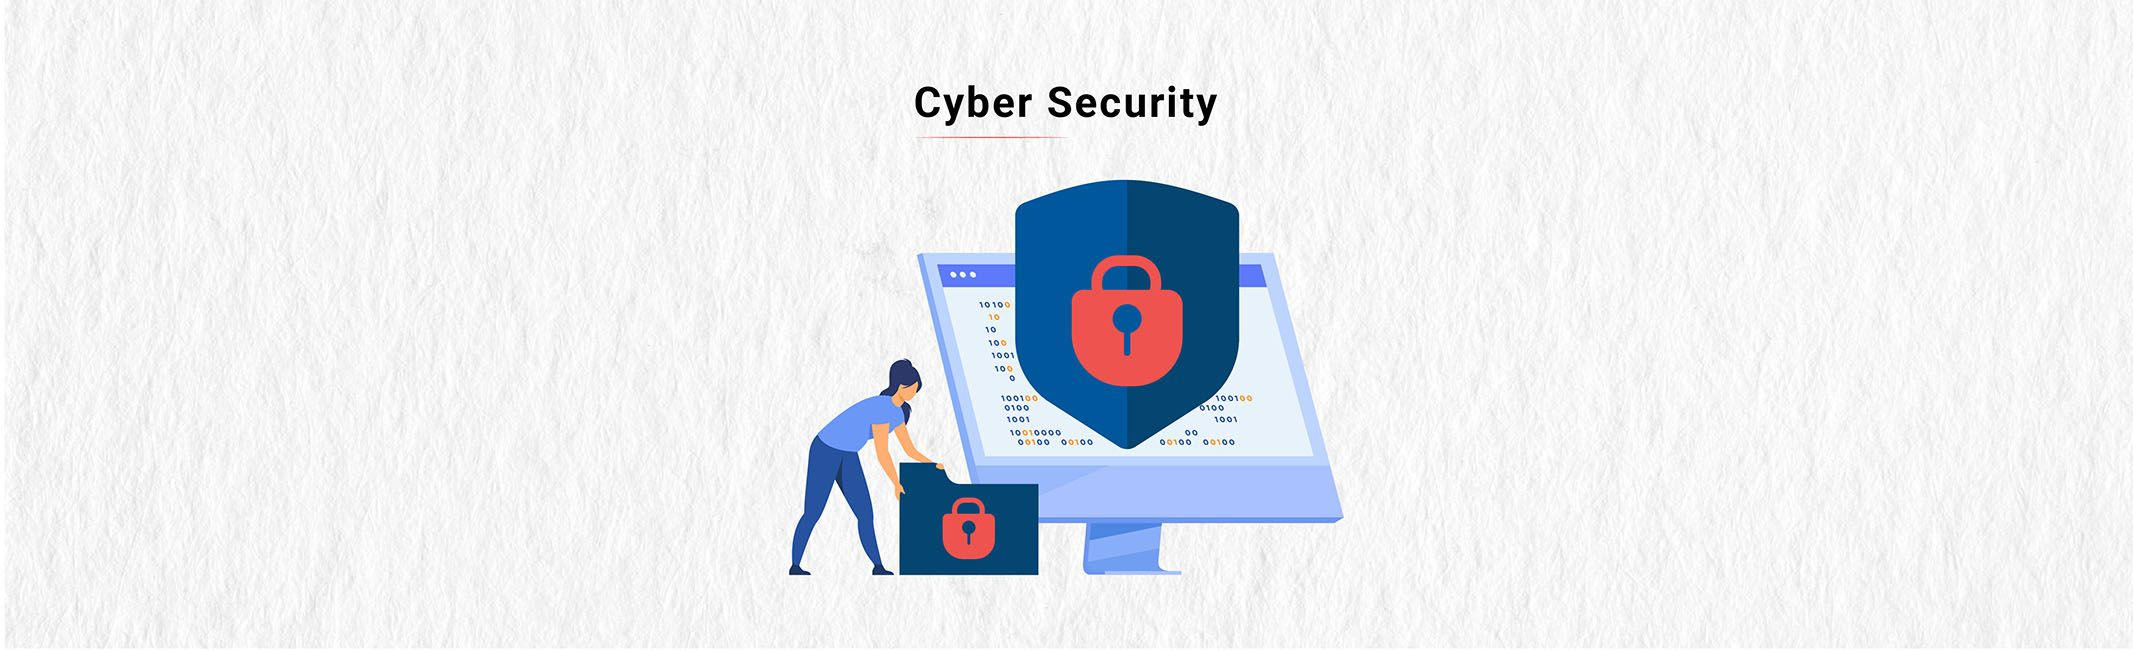 /learning-cybersecurity-what-is-risk-management-r33f35yk feature image